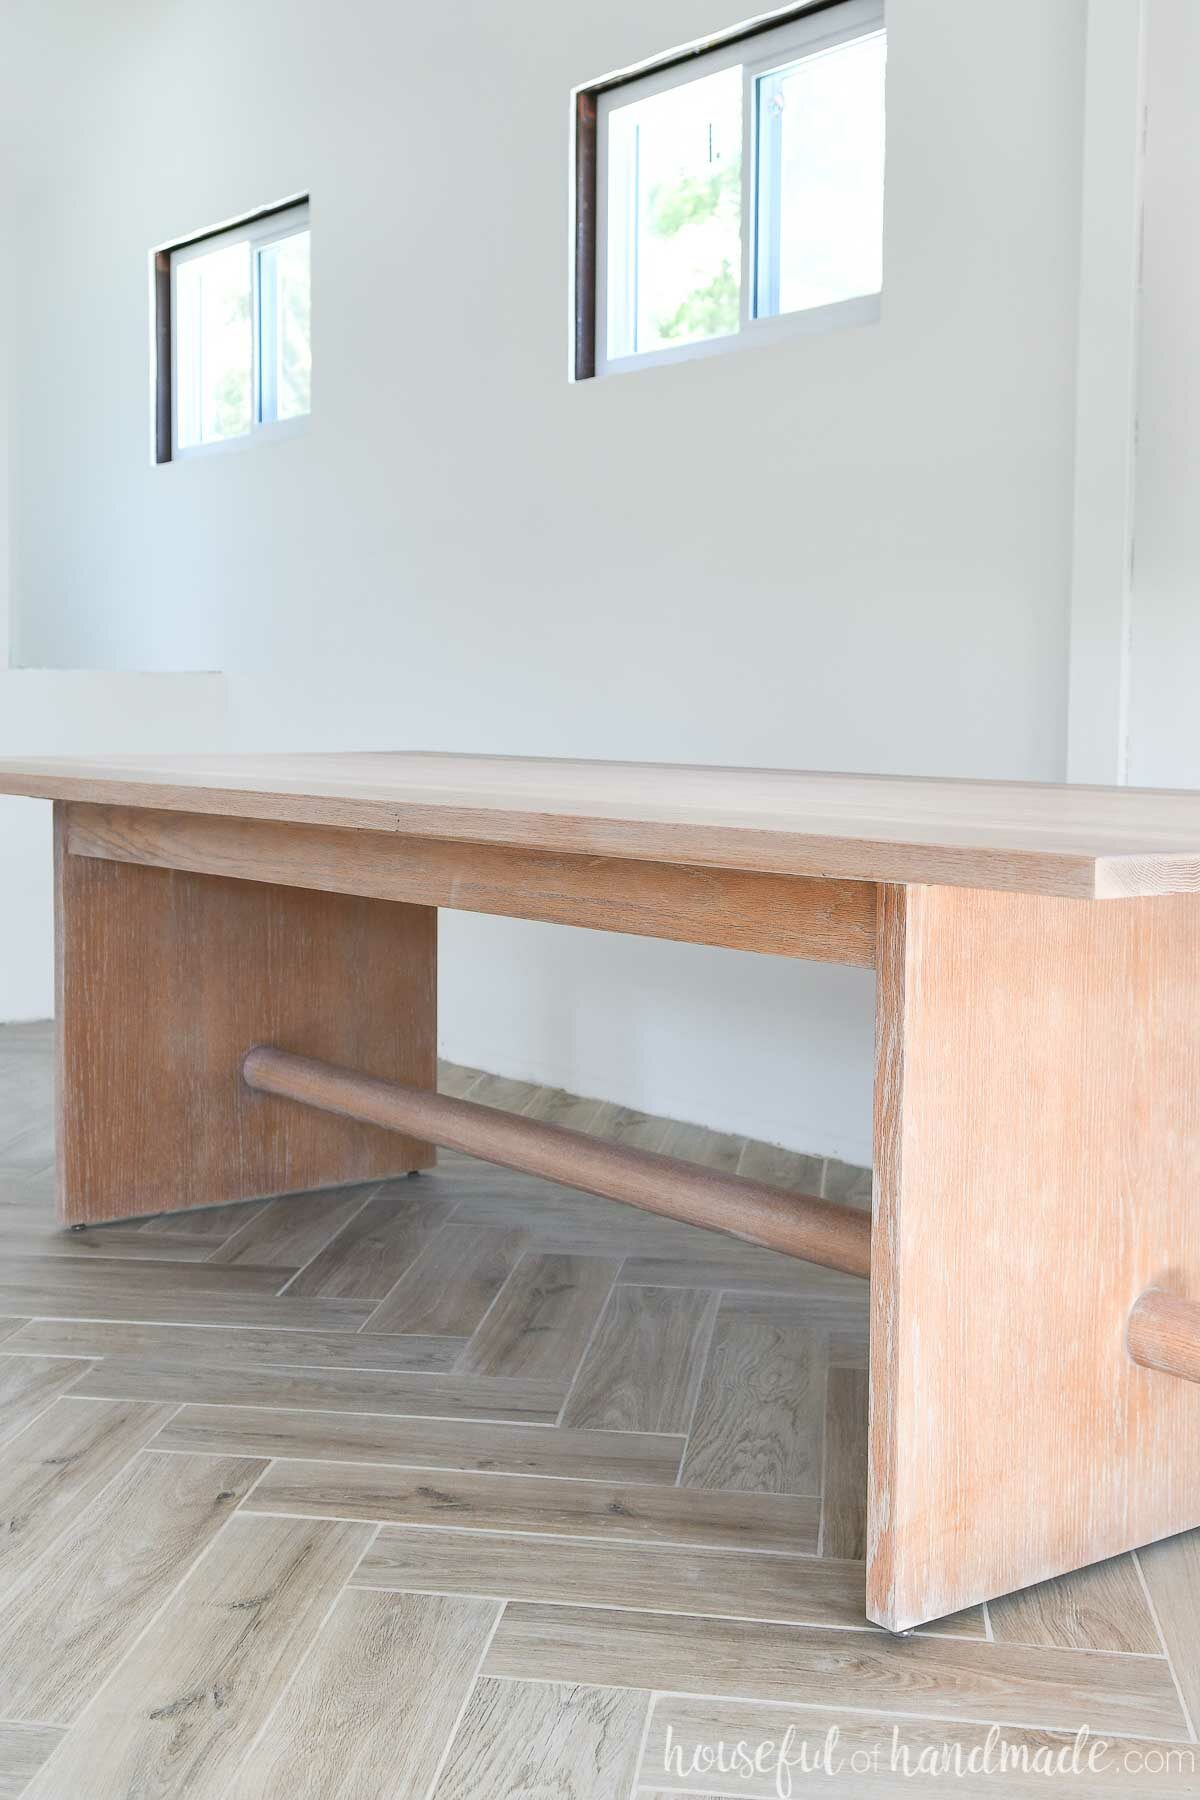 Looking down one side of the large dining table refinished with a modern matte sealer.